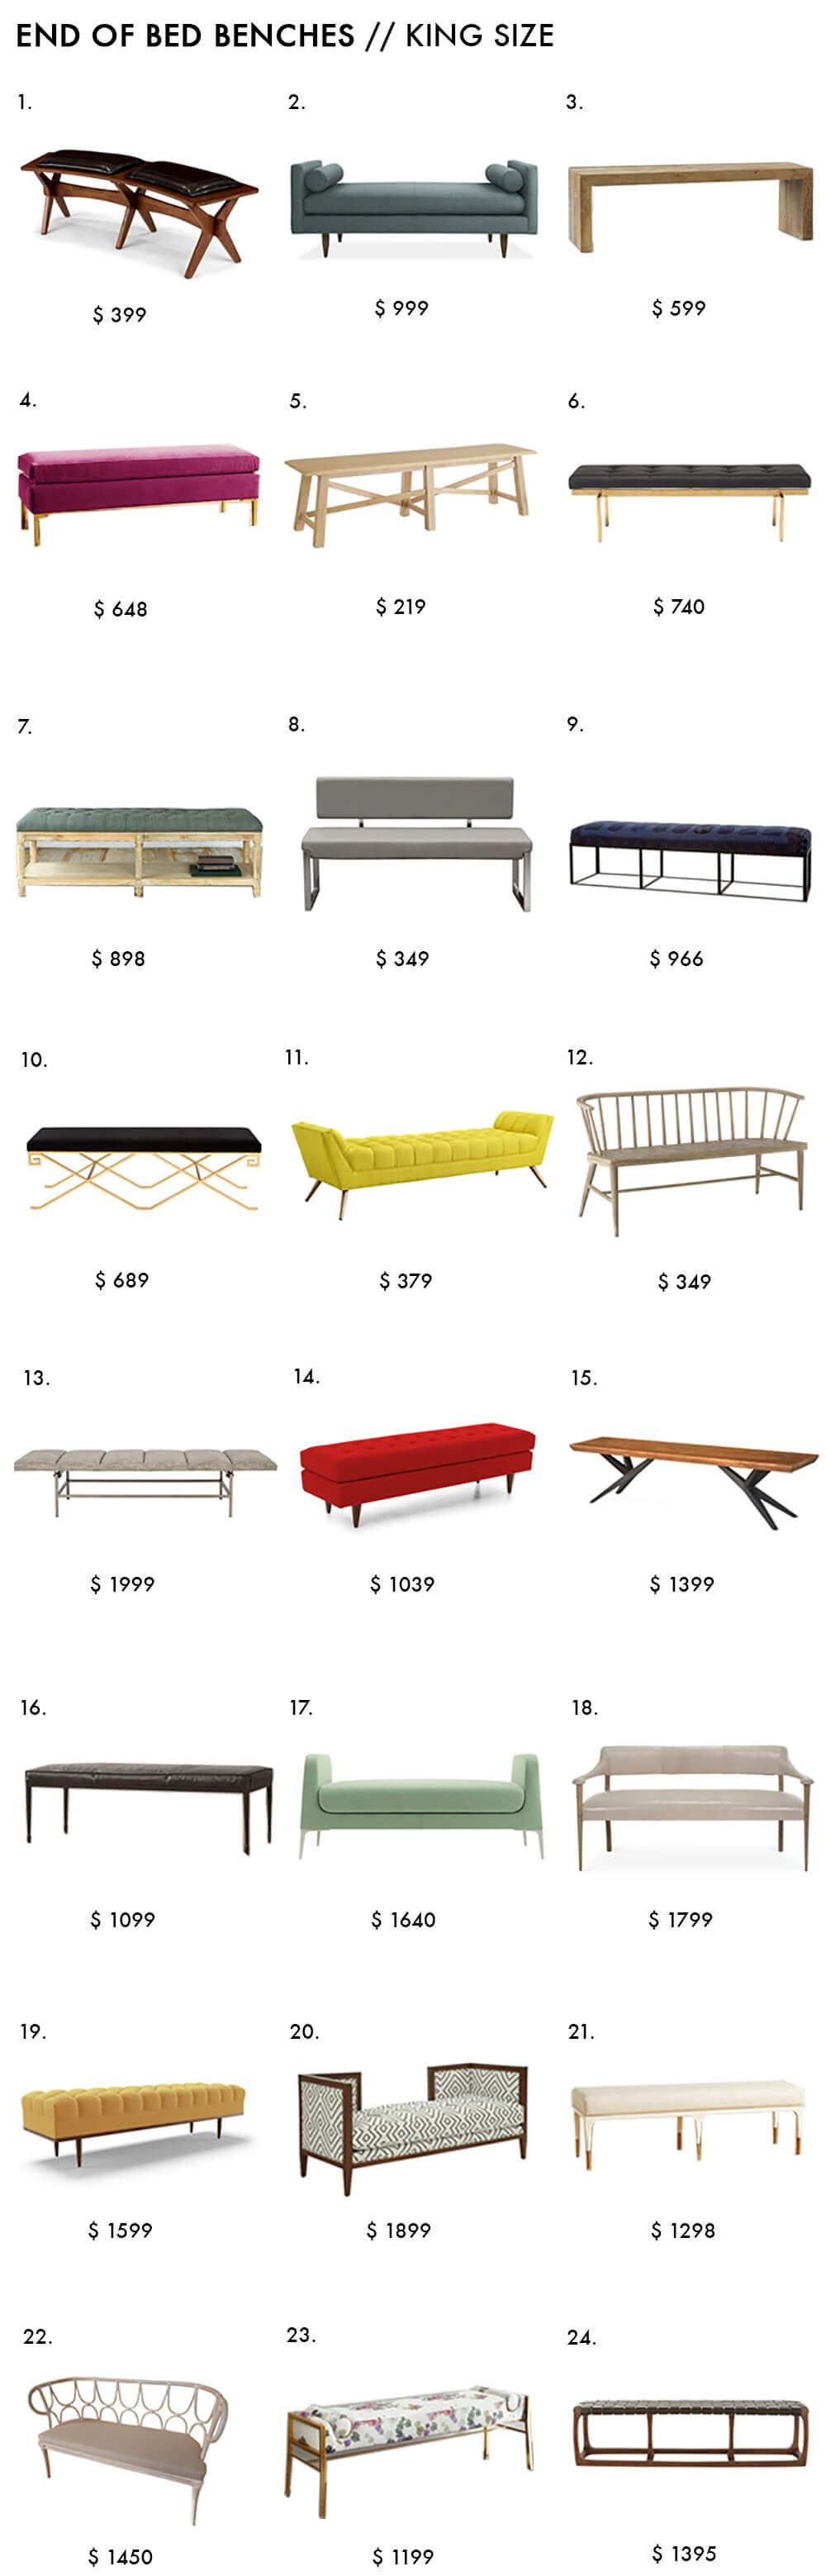 End Of Bed Benches For King Size Beds